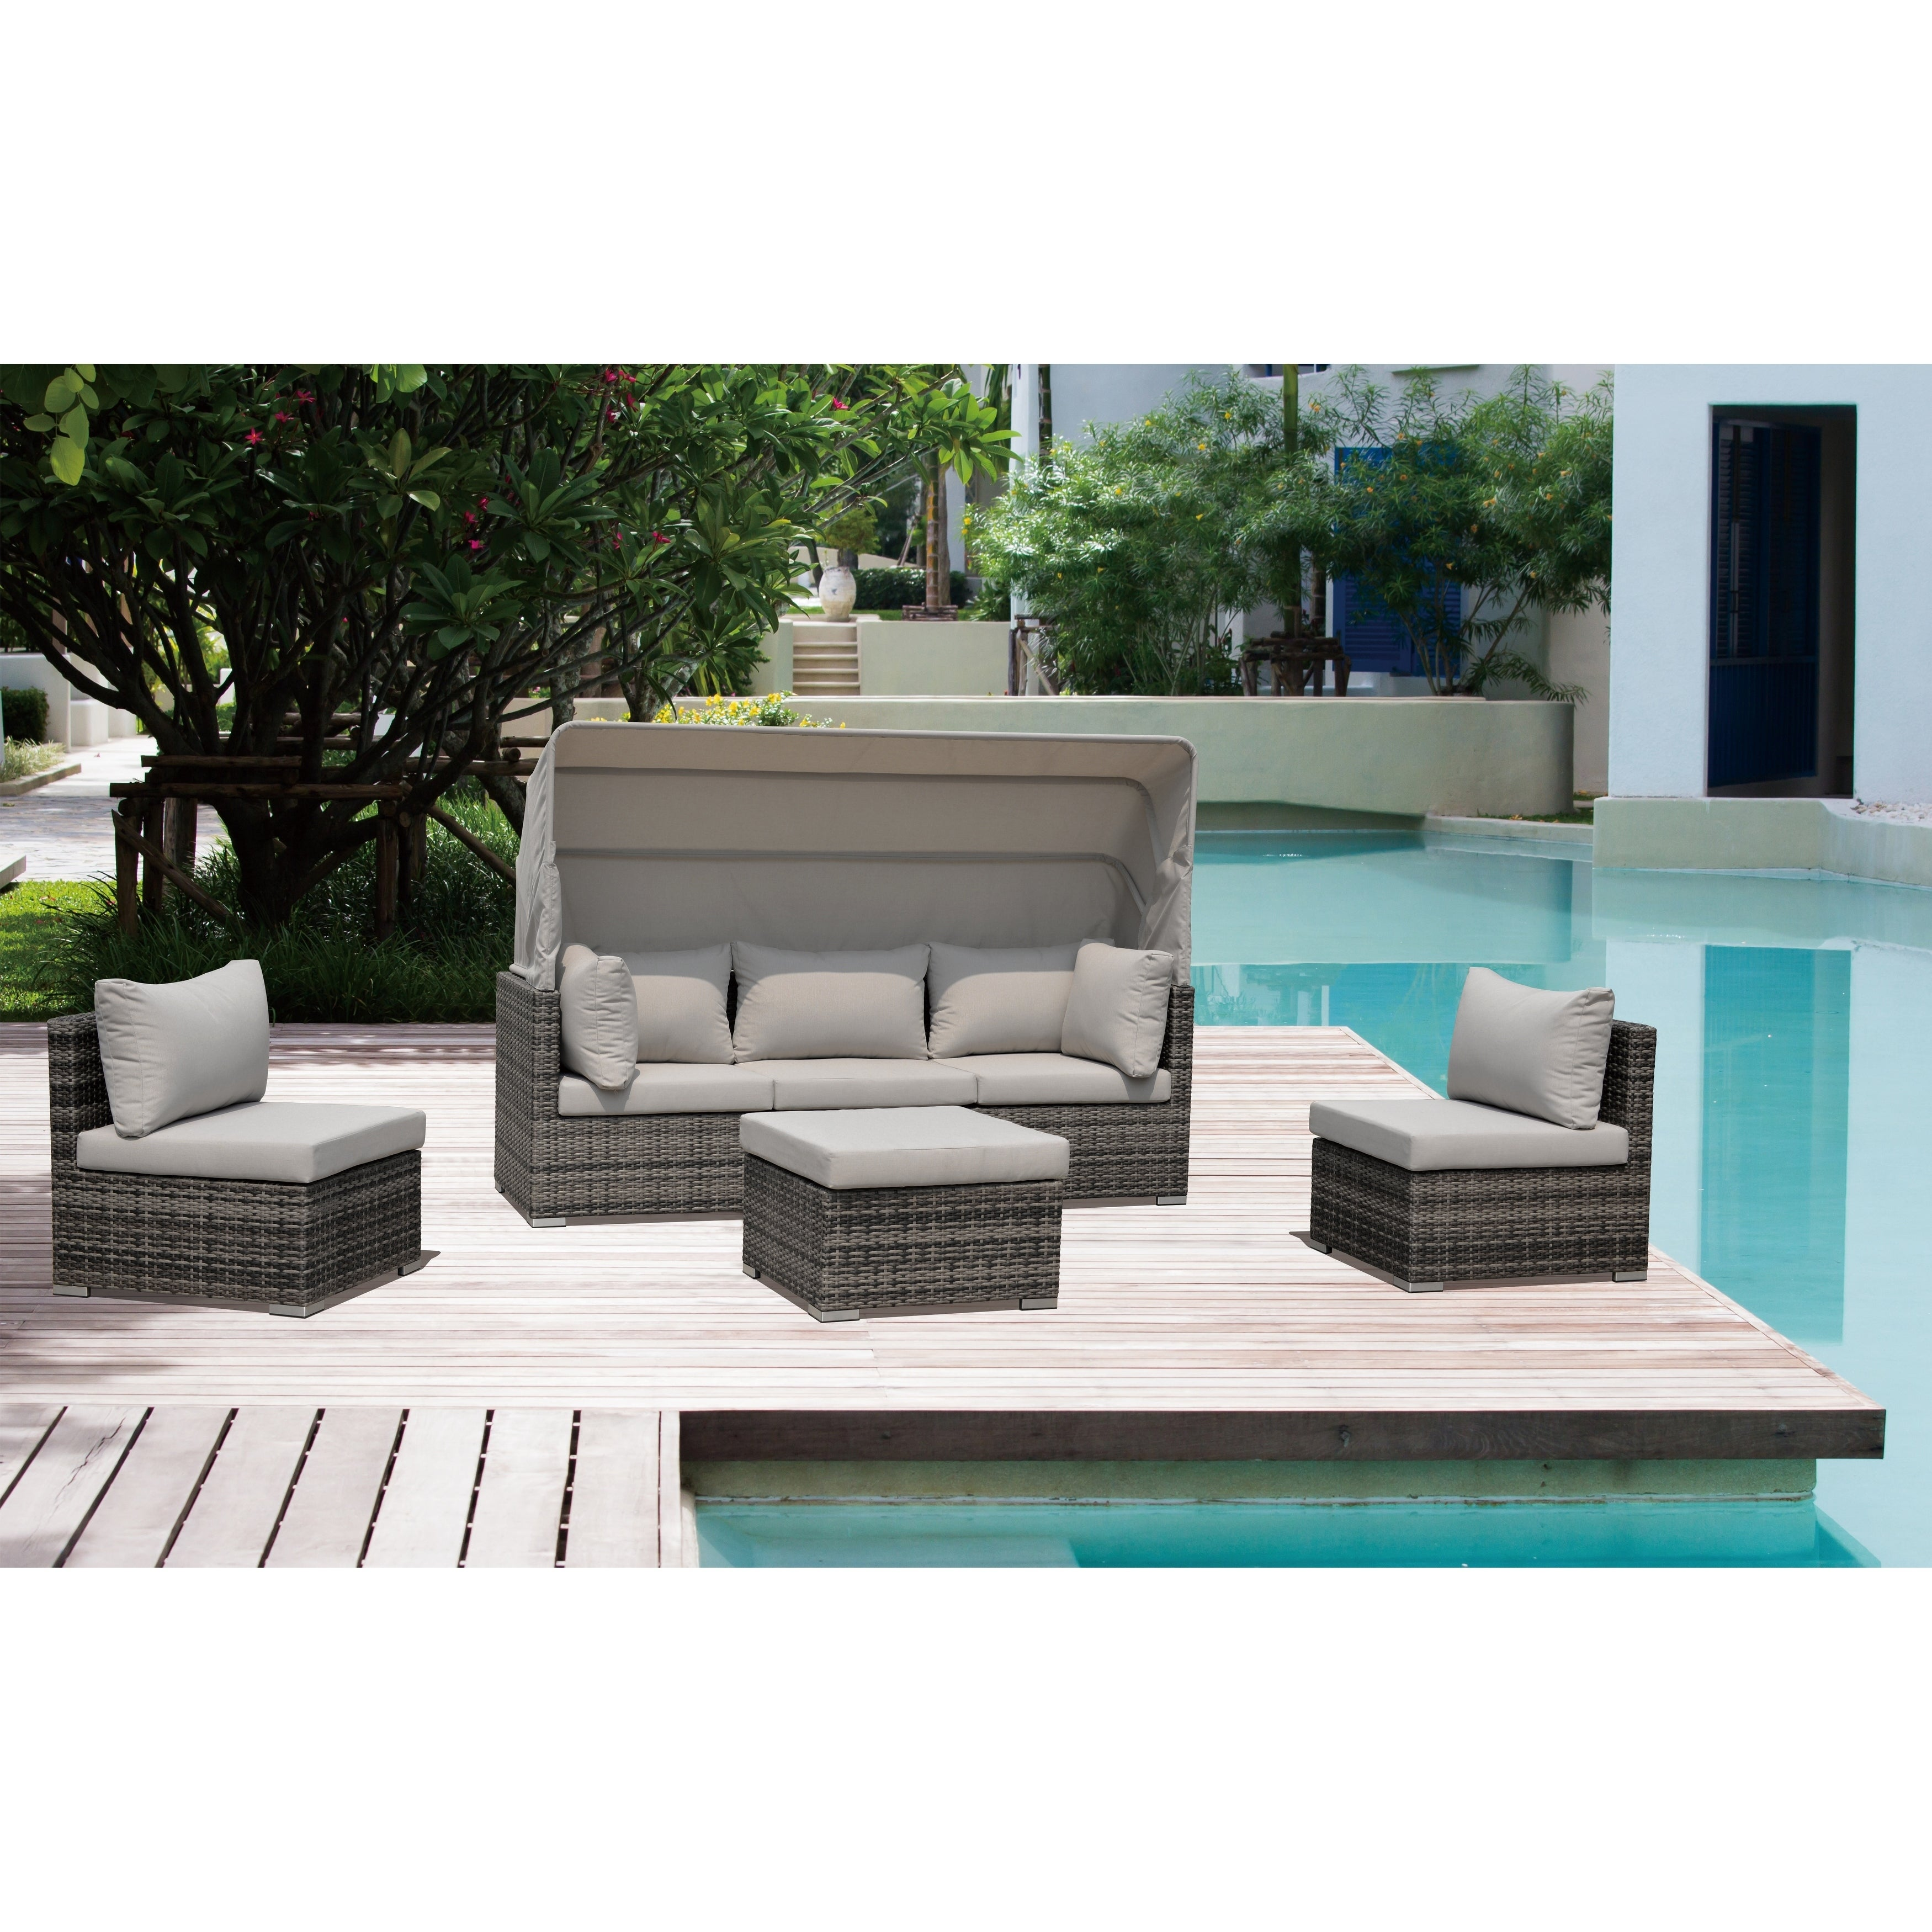 holdencanopyoutdoorpatiodaybedwithcushions tonga studio brayden canopy patio christopher luna daybed brown dark gazebo rattan holden outdoor bar bed swing by with full size set knight cushions furniture home